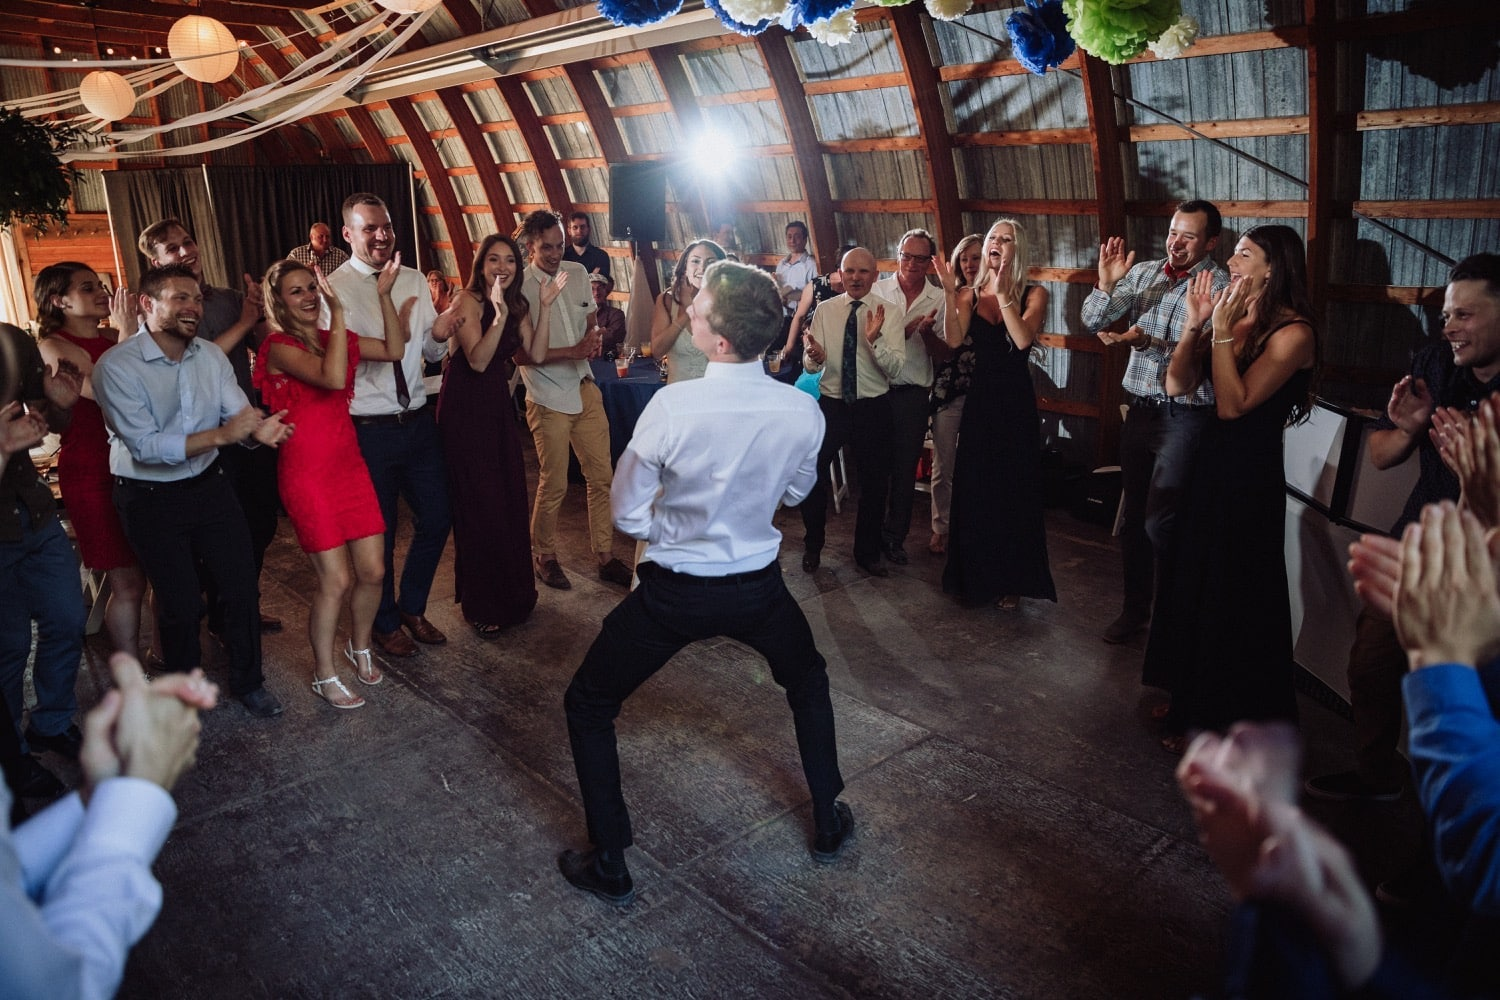 A dance circle has formed at a wedding with one man entertaining everyone in the middle